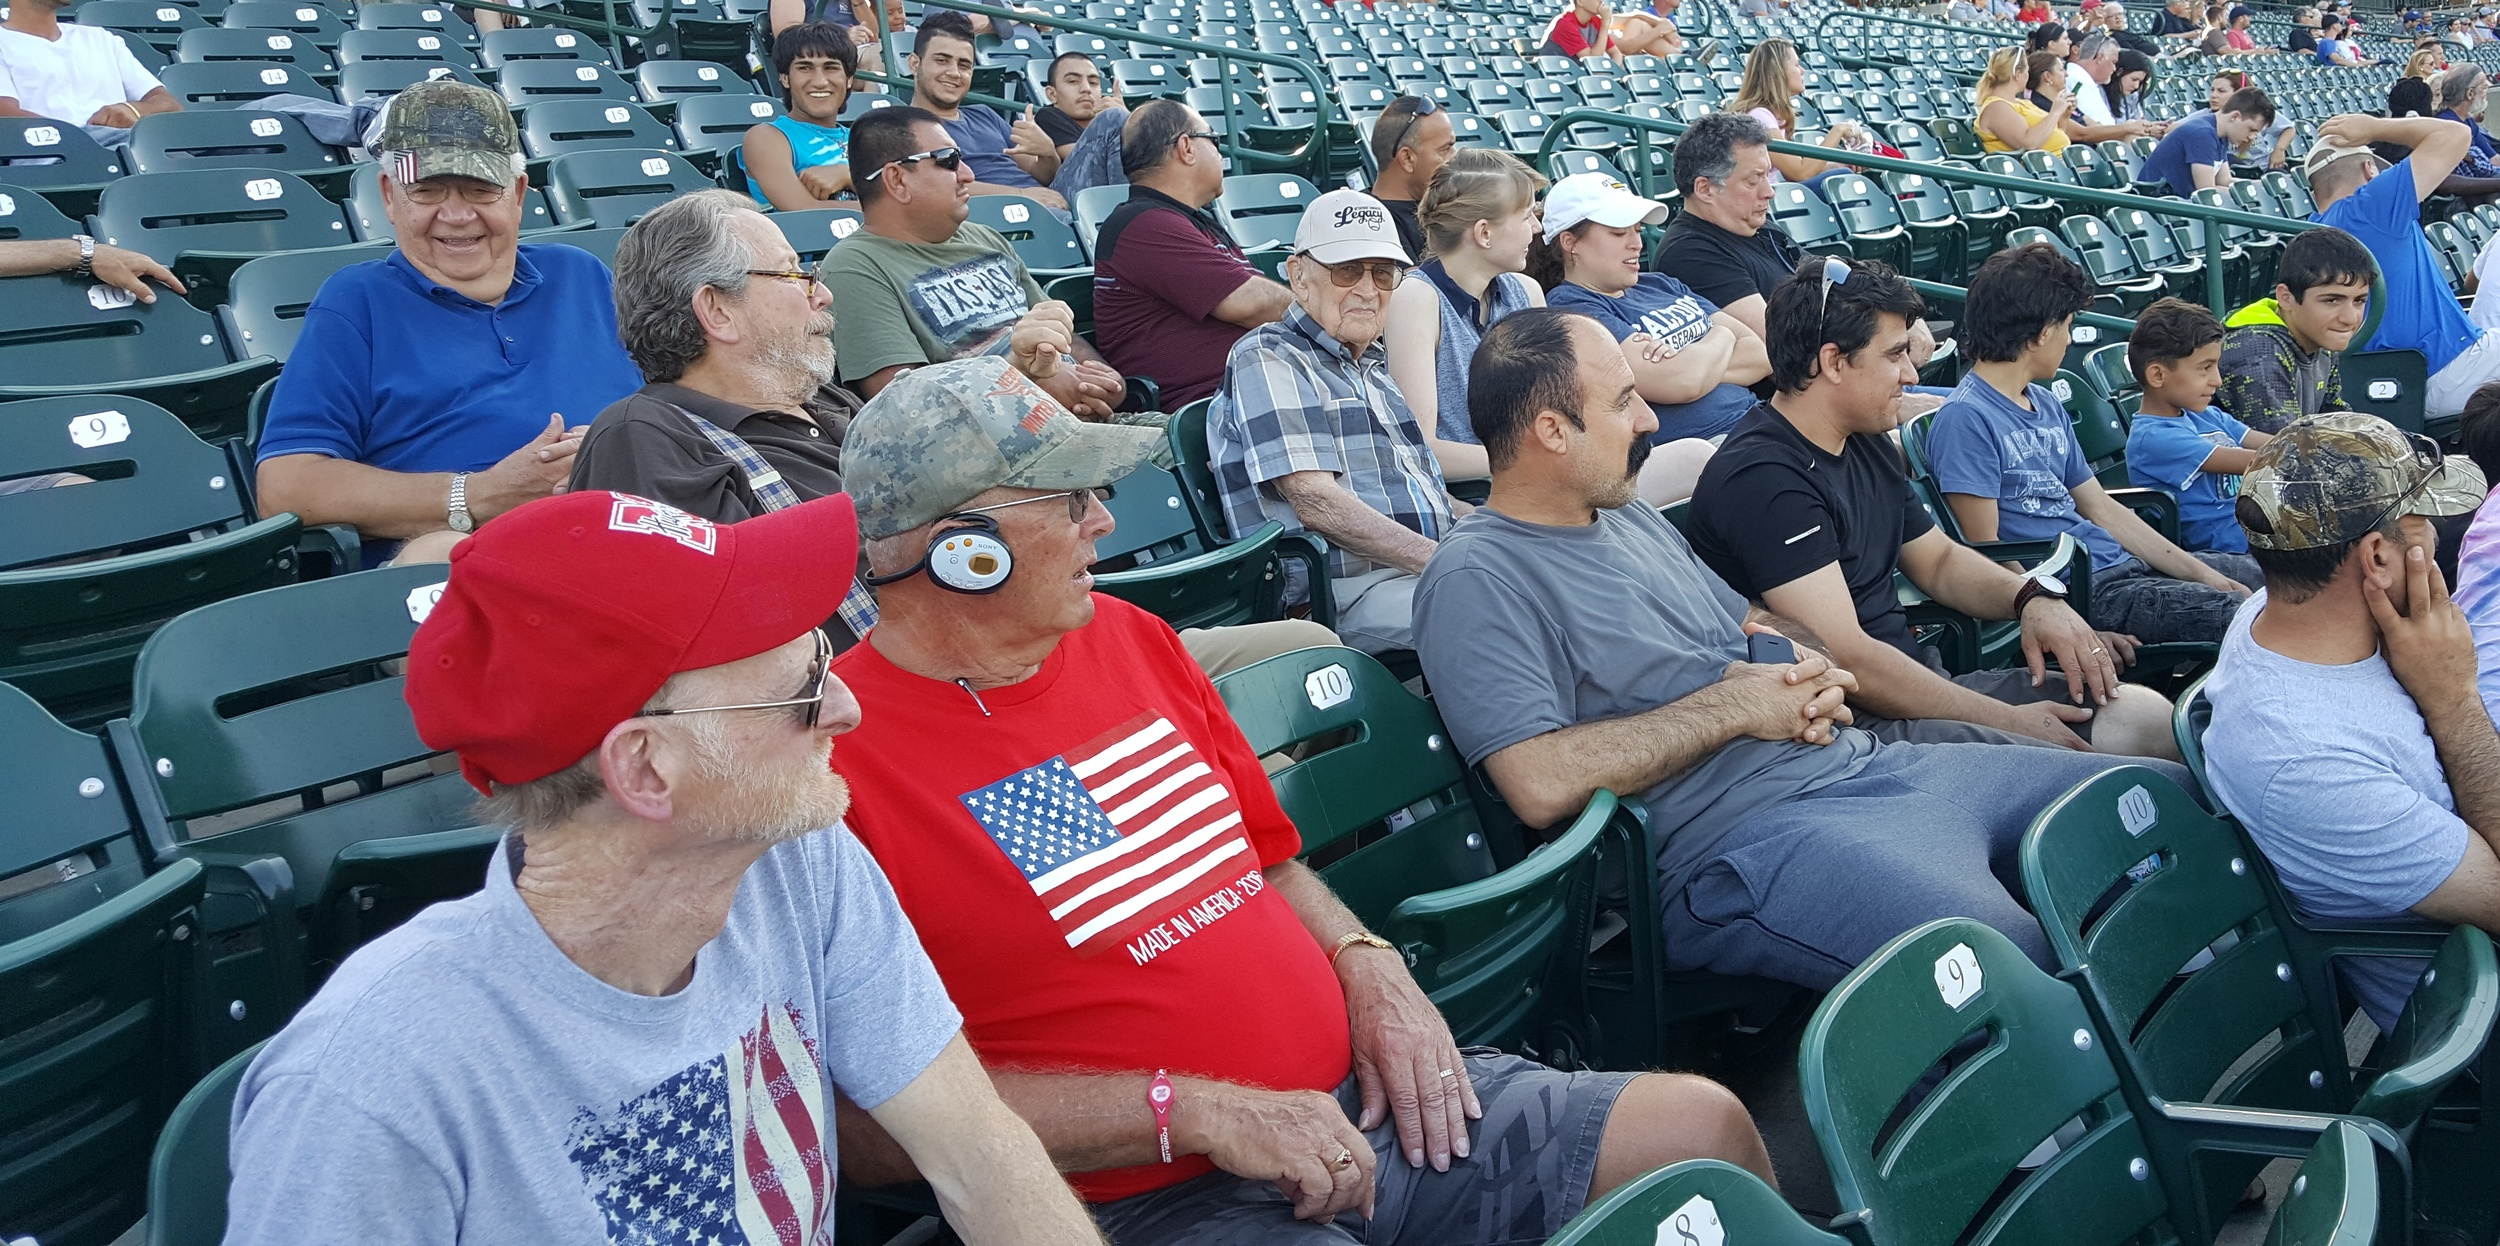 Saltdogs Baseball game with the Yazidi men